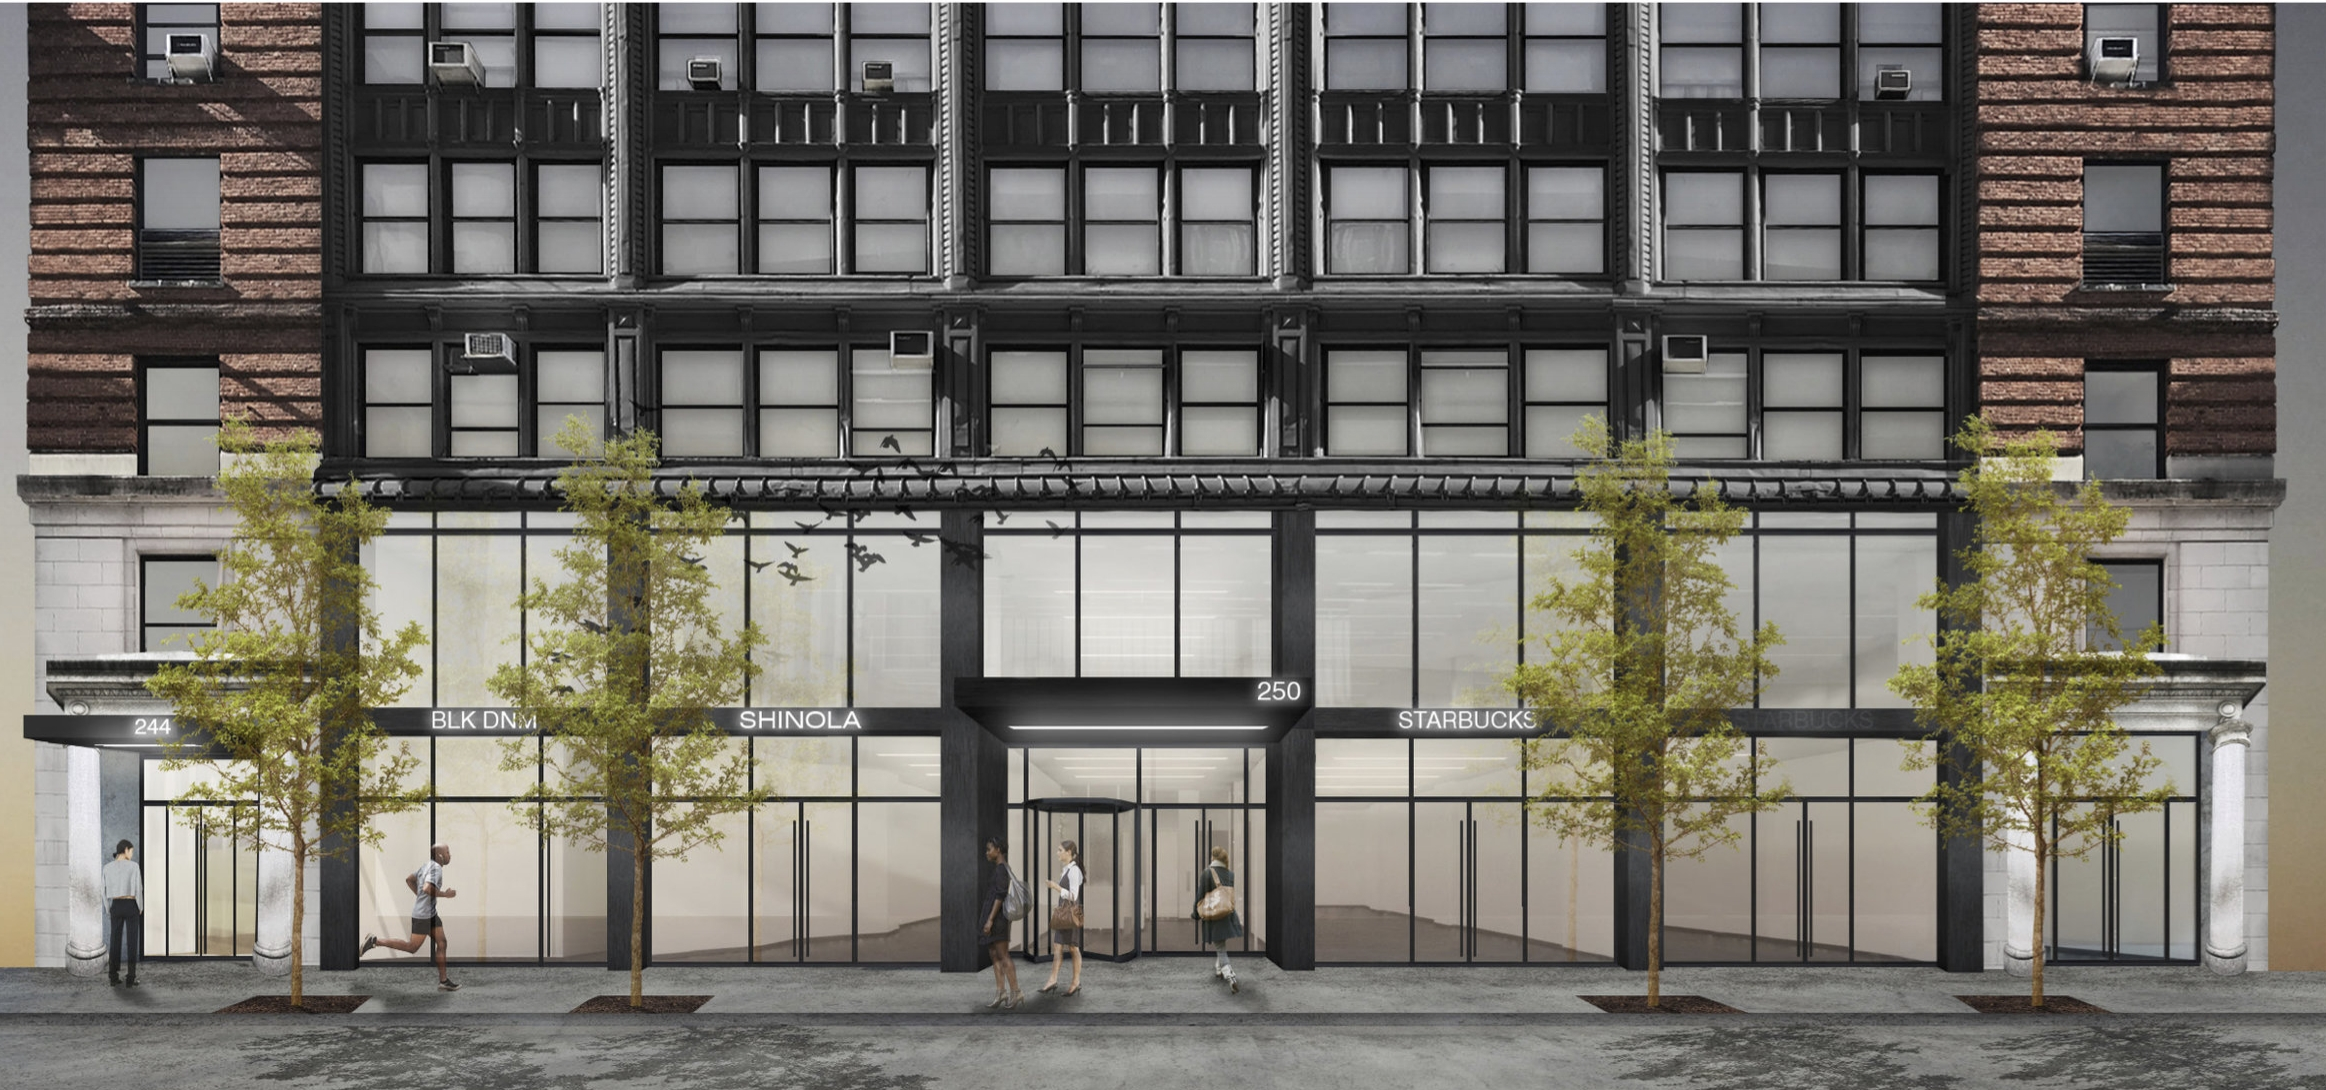 250 W 54th Street - Office - From 2,000 up to 35,000SF Available.(2,800Sf; 3,100SF ; 3700SF ; 8,500SF ; 12,965SF)